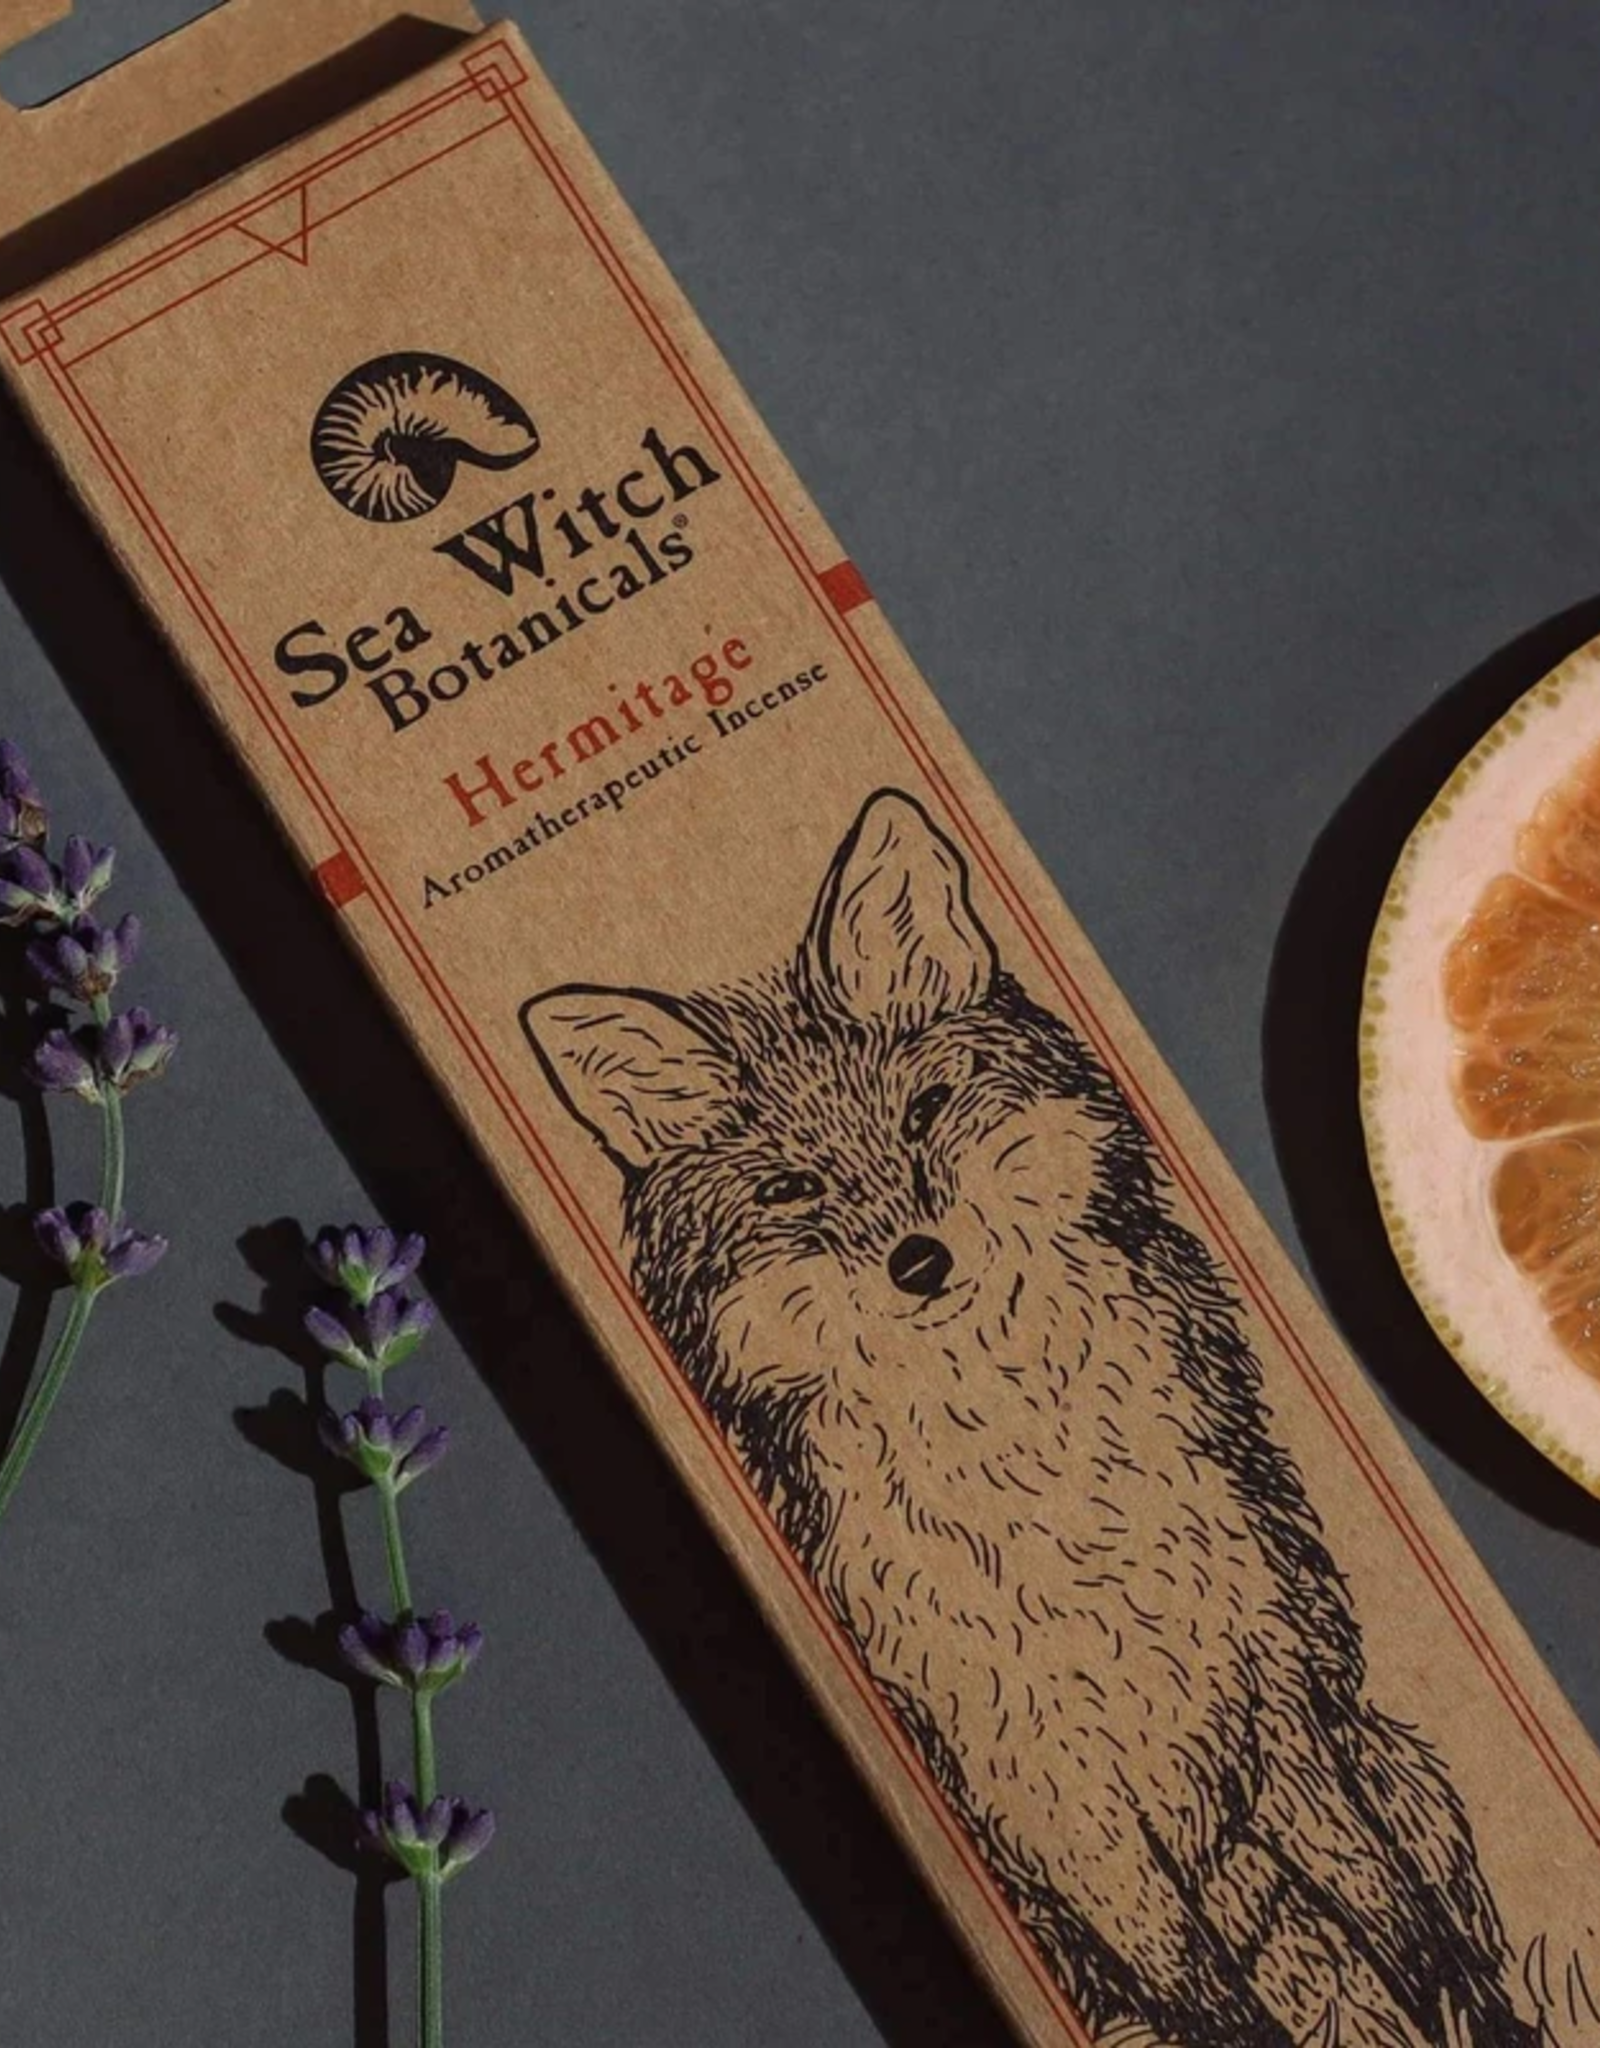 Sea Witch Botanicals Hermitage Incense